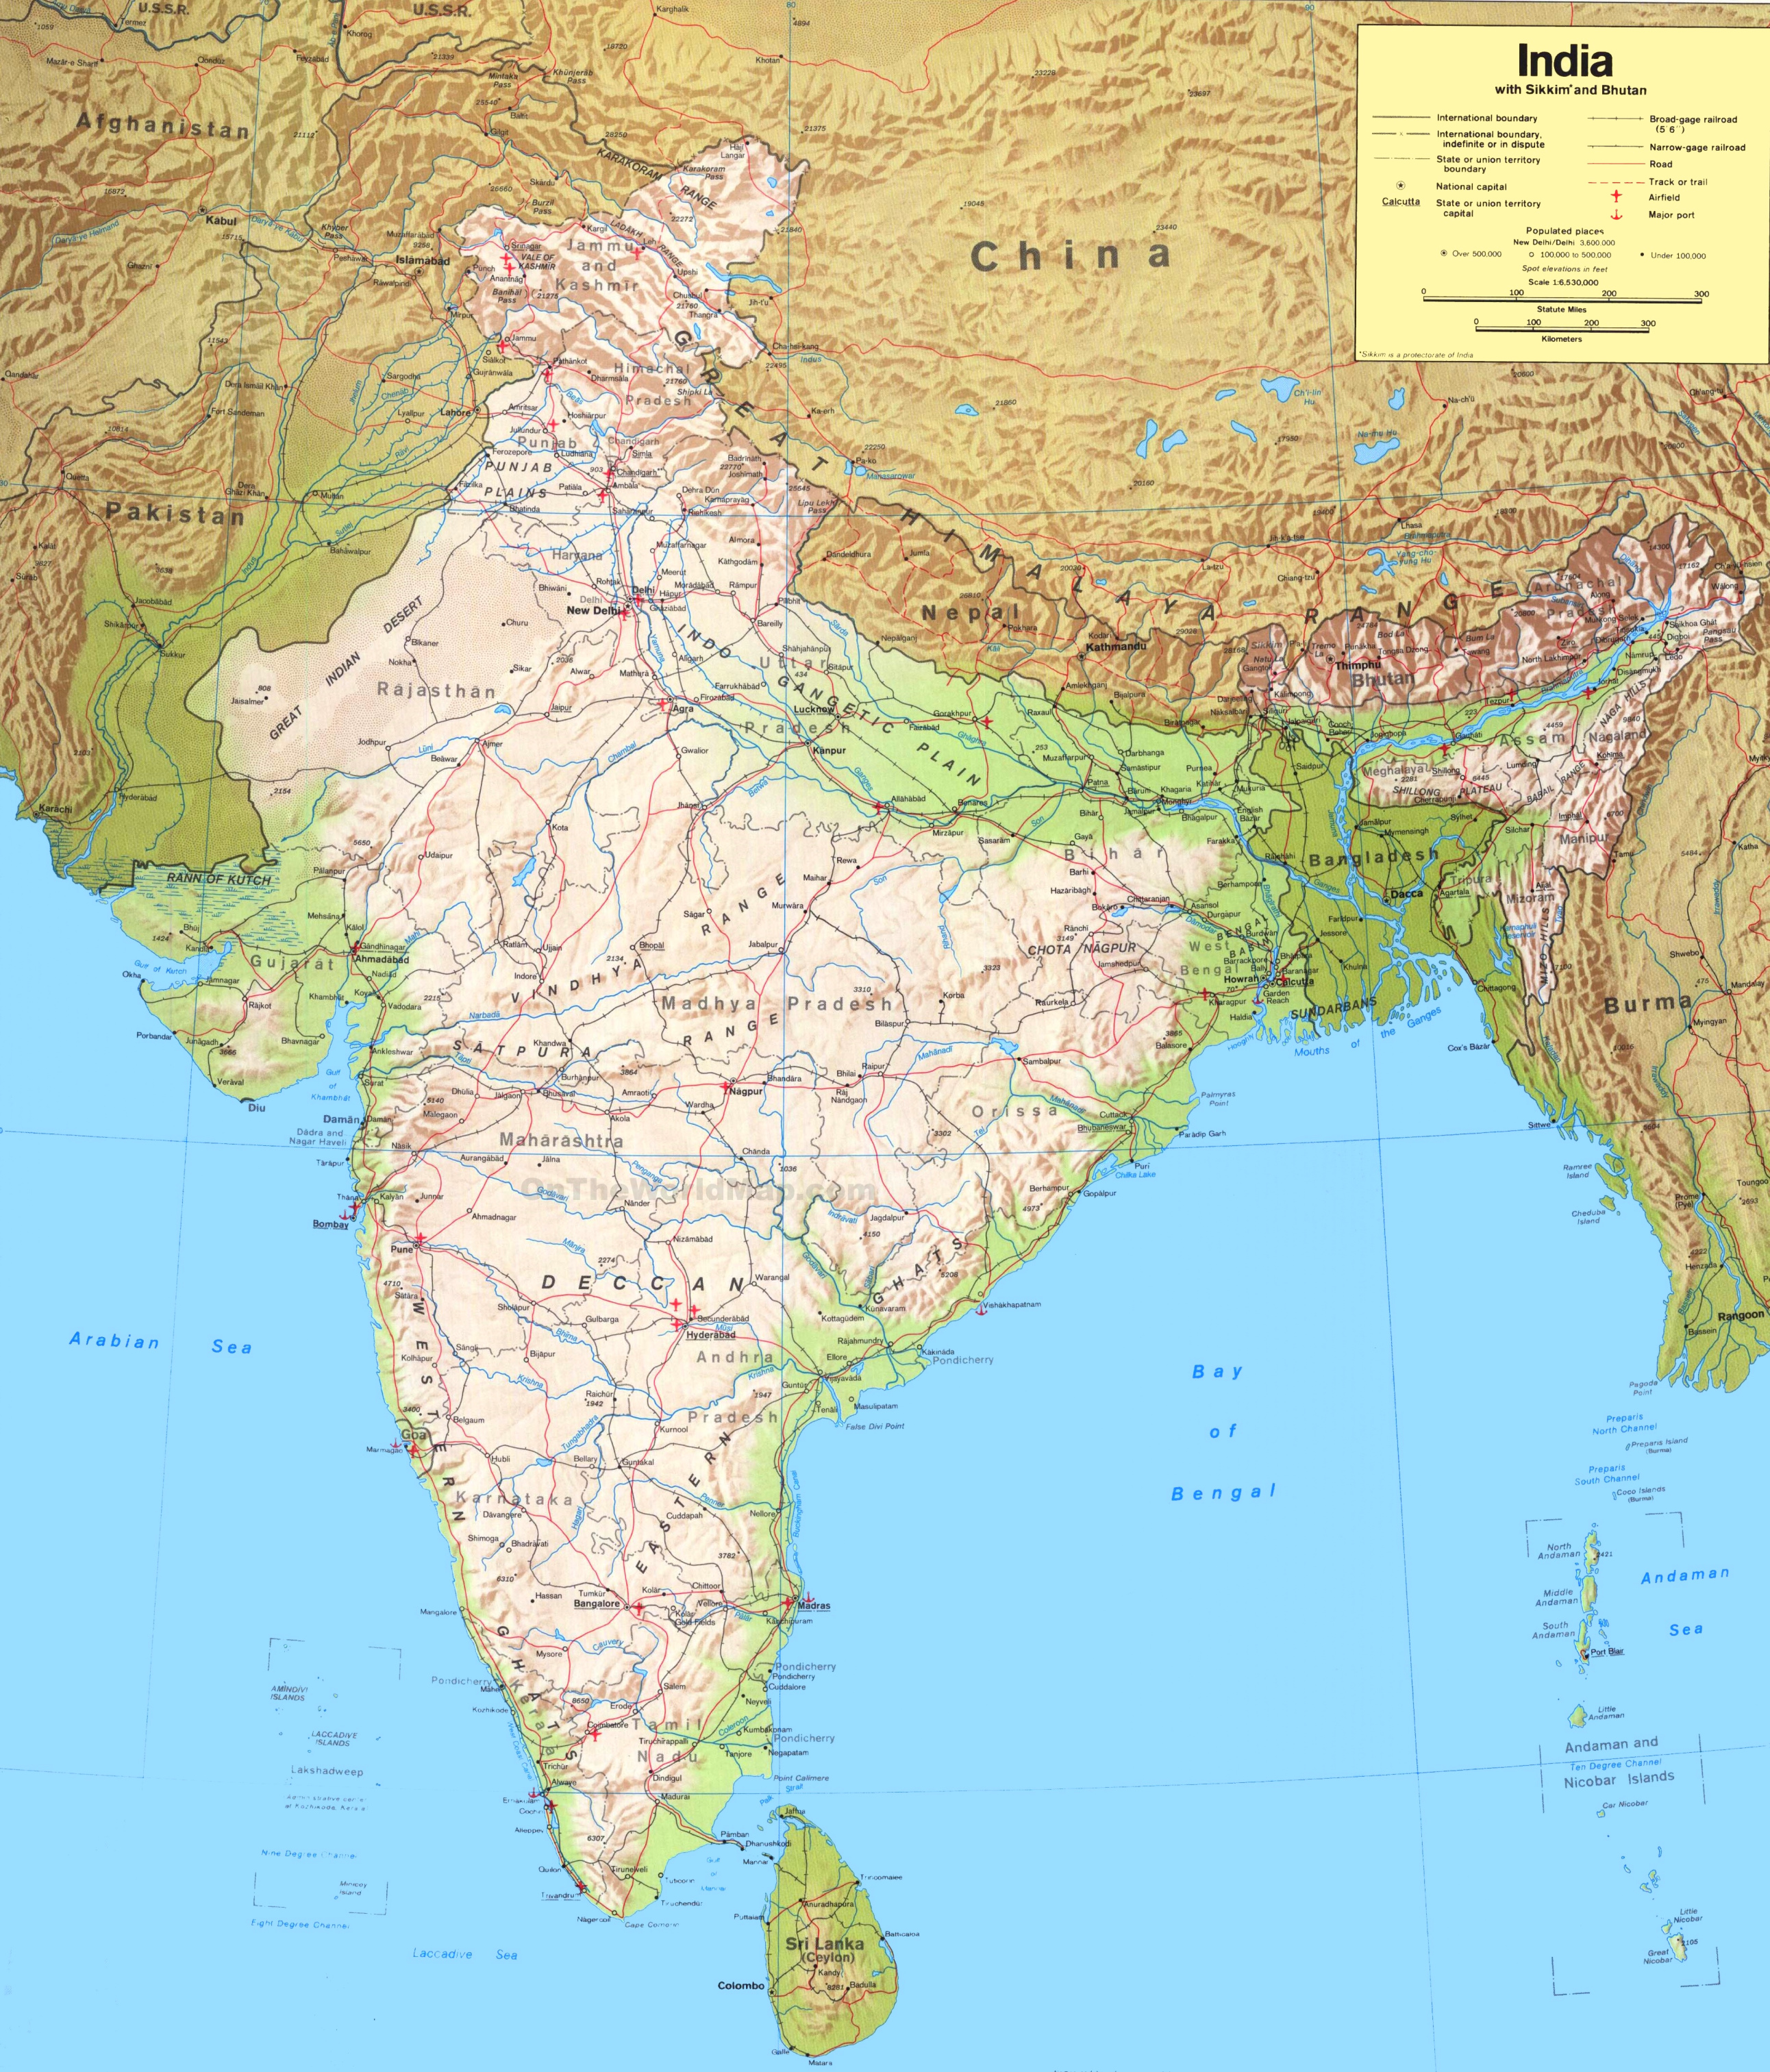 Detailed Map Of India Large detailed map of India